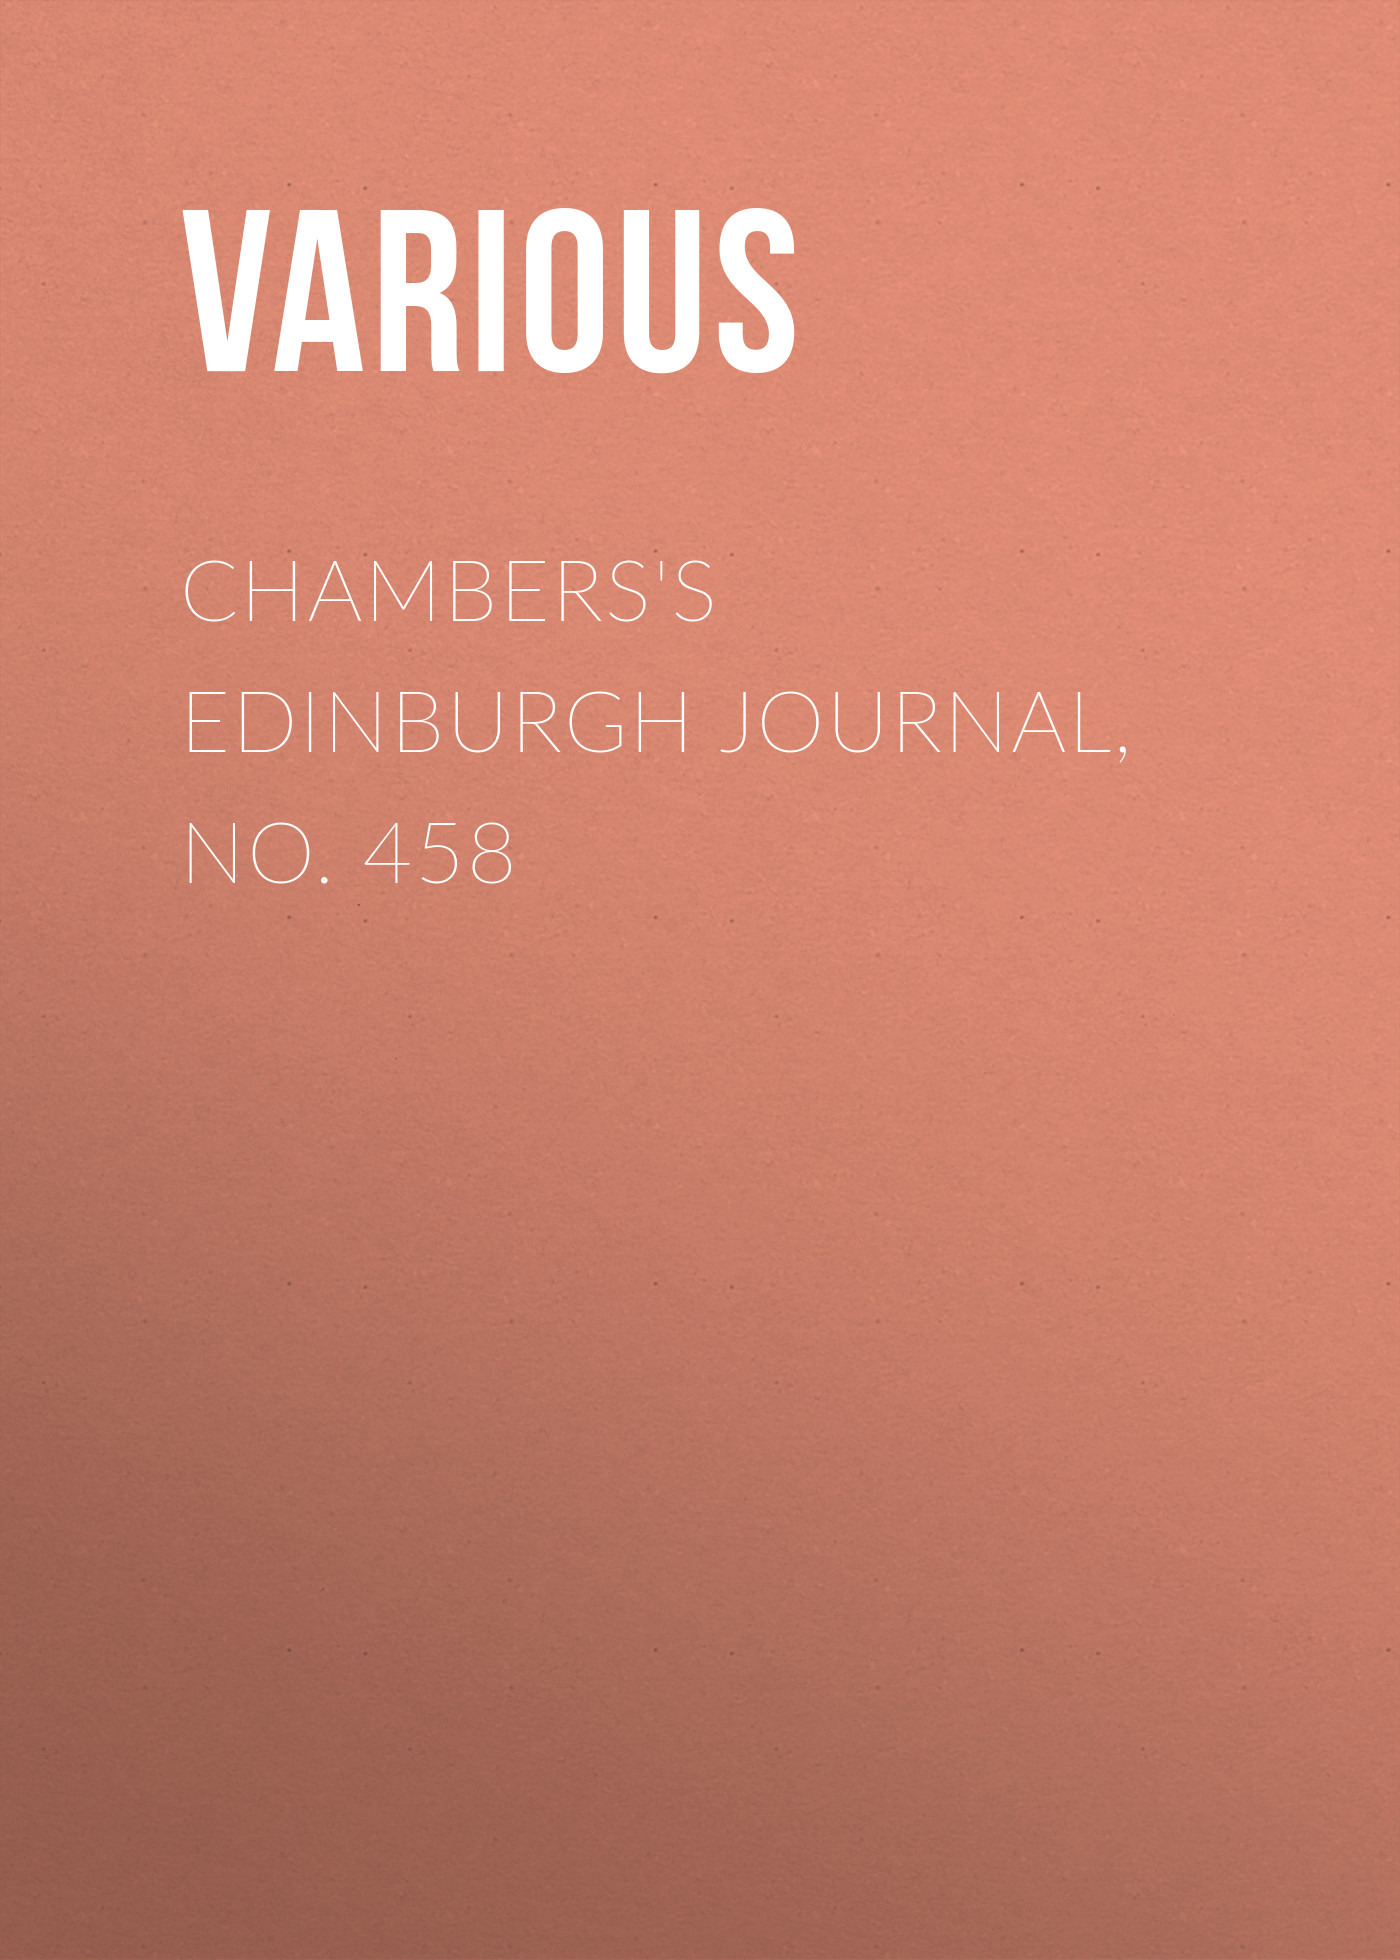 Chambers's Edinburgh Journal, No. 458